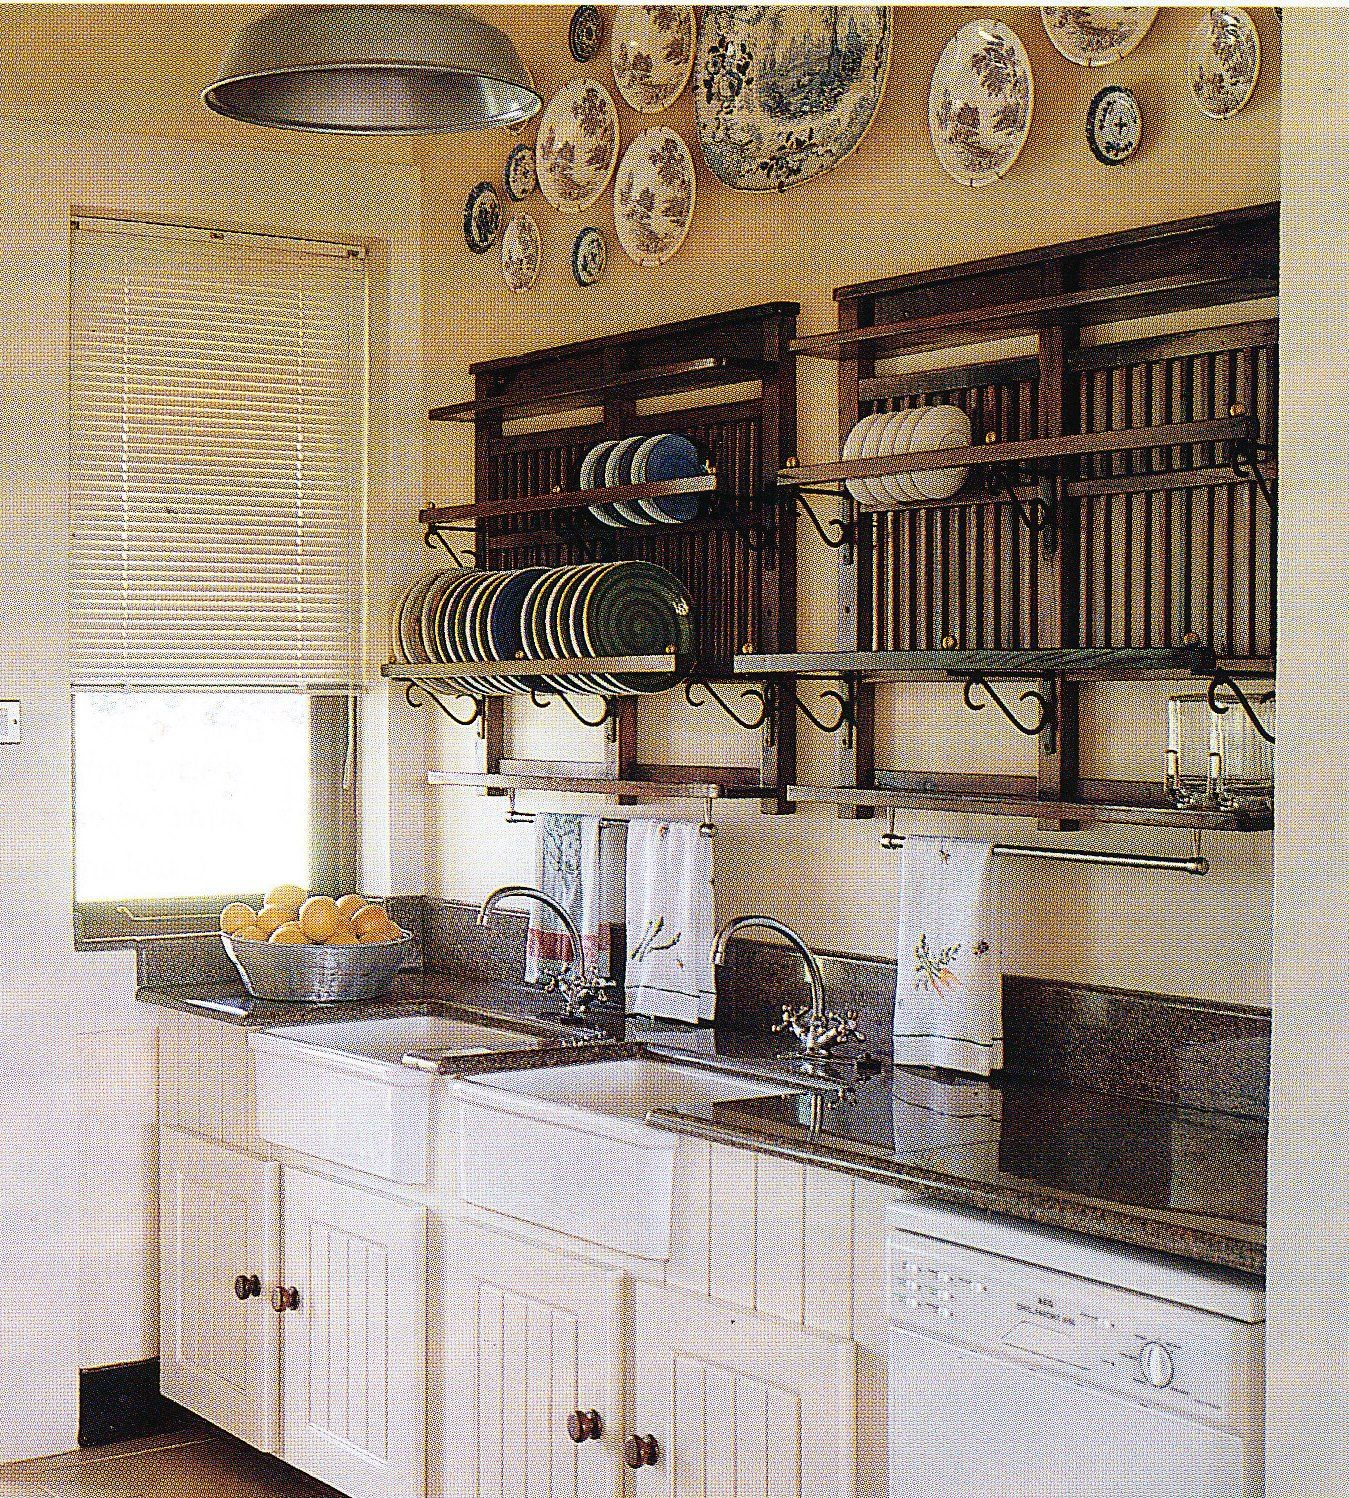 Kitchen Cabinets Plate Rack: I Have An Obsession With Plate Racks. They Look Good, And